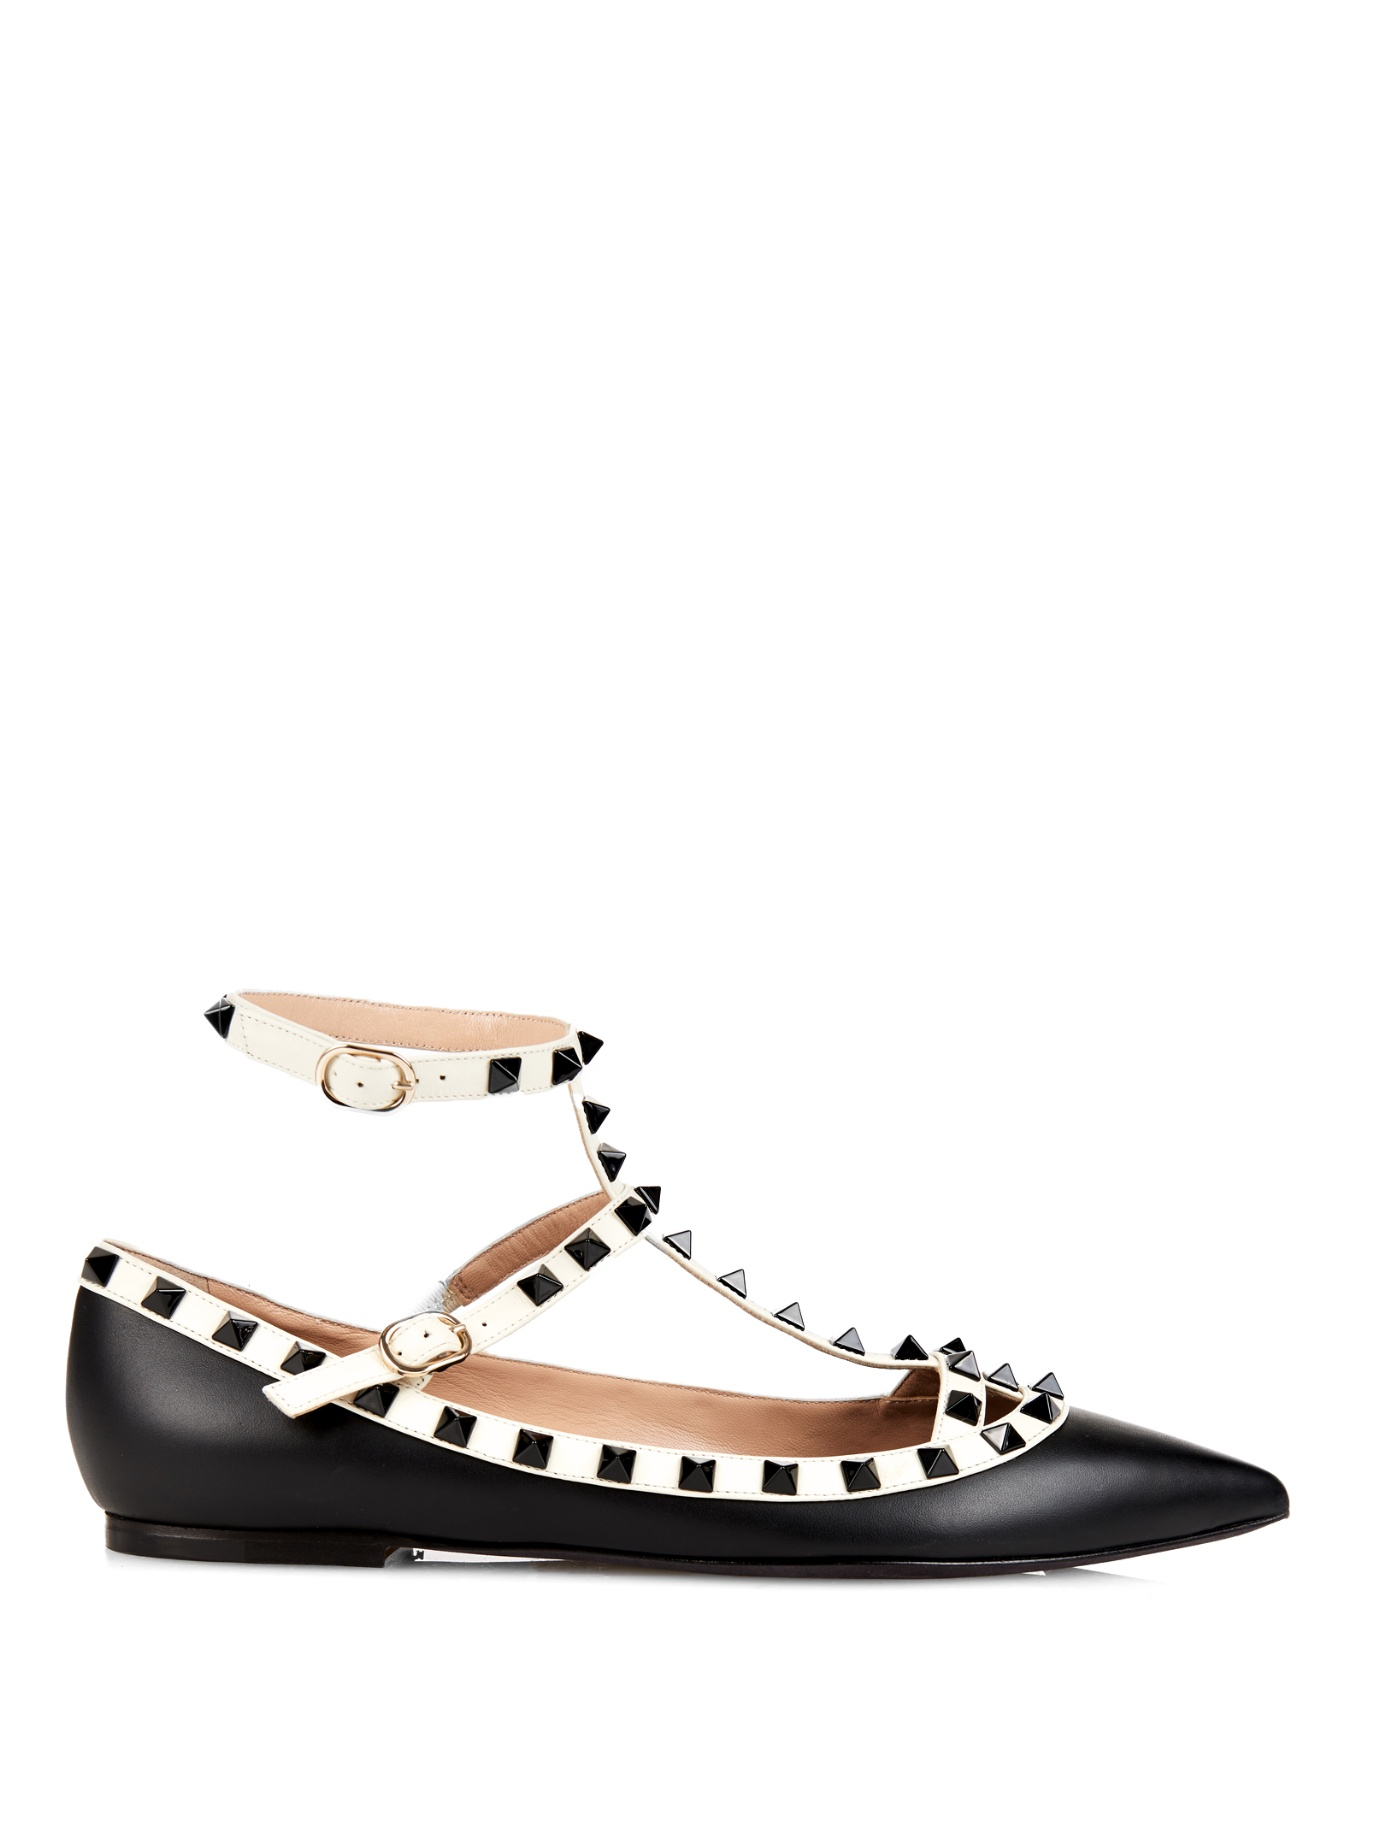 3f34c40cde31 Valentino Rockstud Pointed-Toe Leather Flats in Black - Lyst